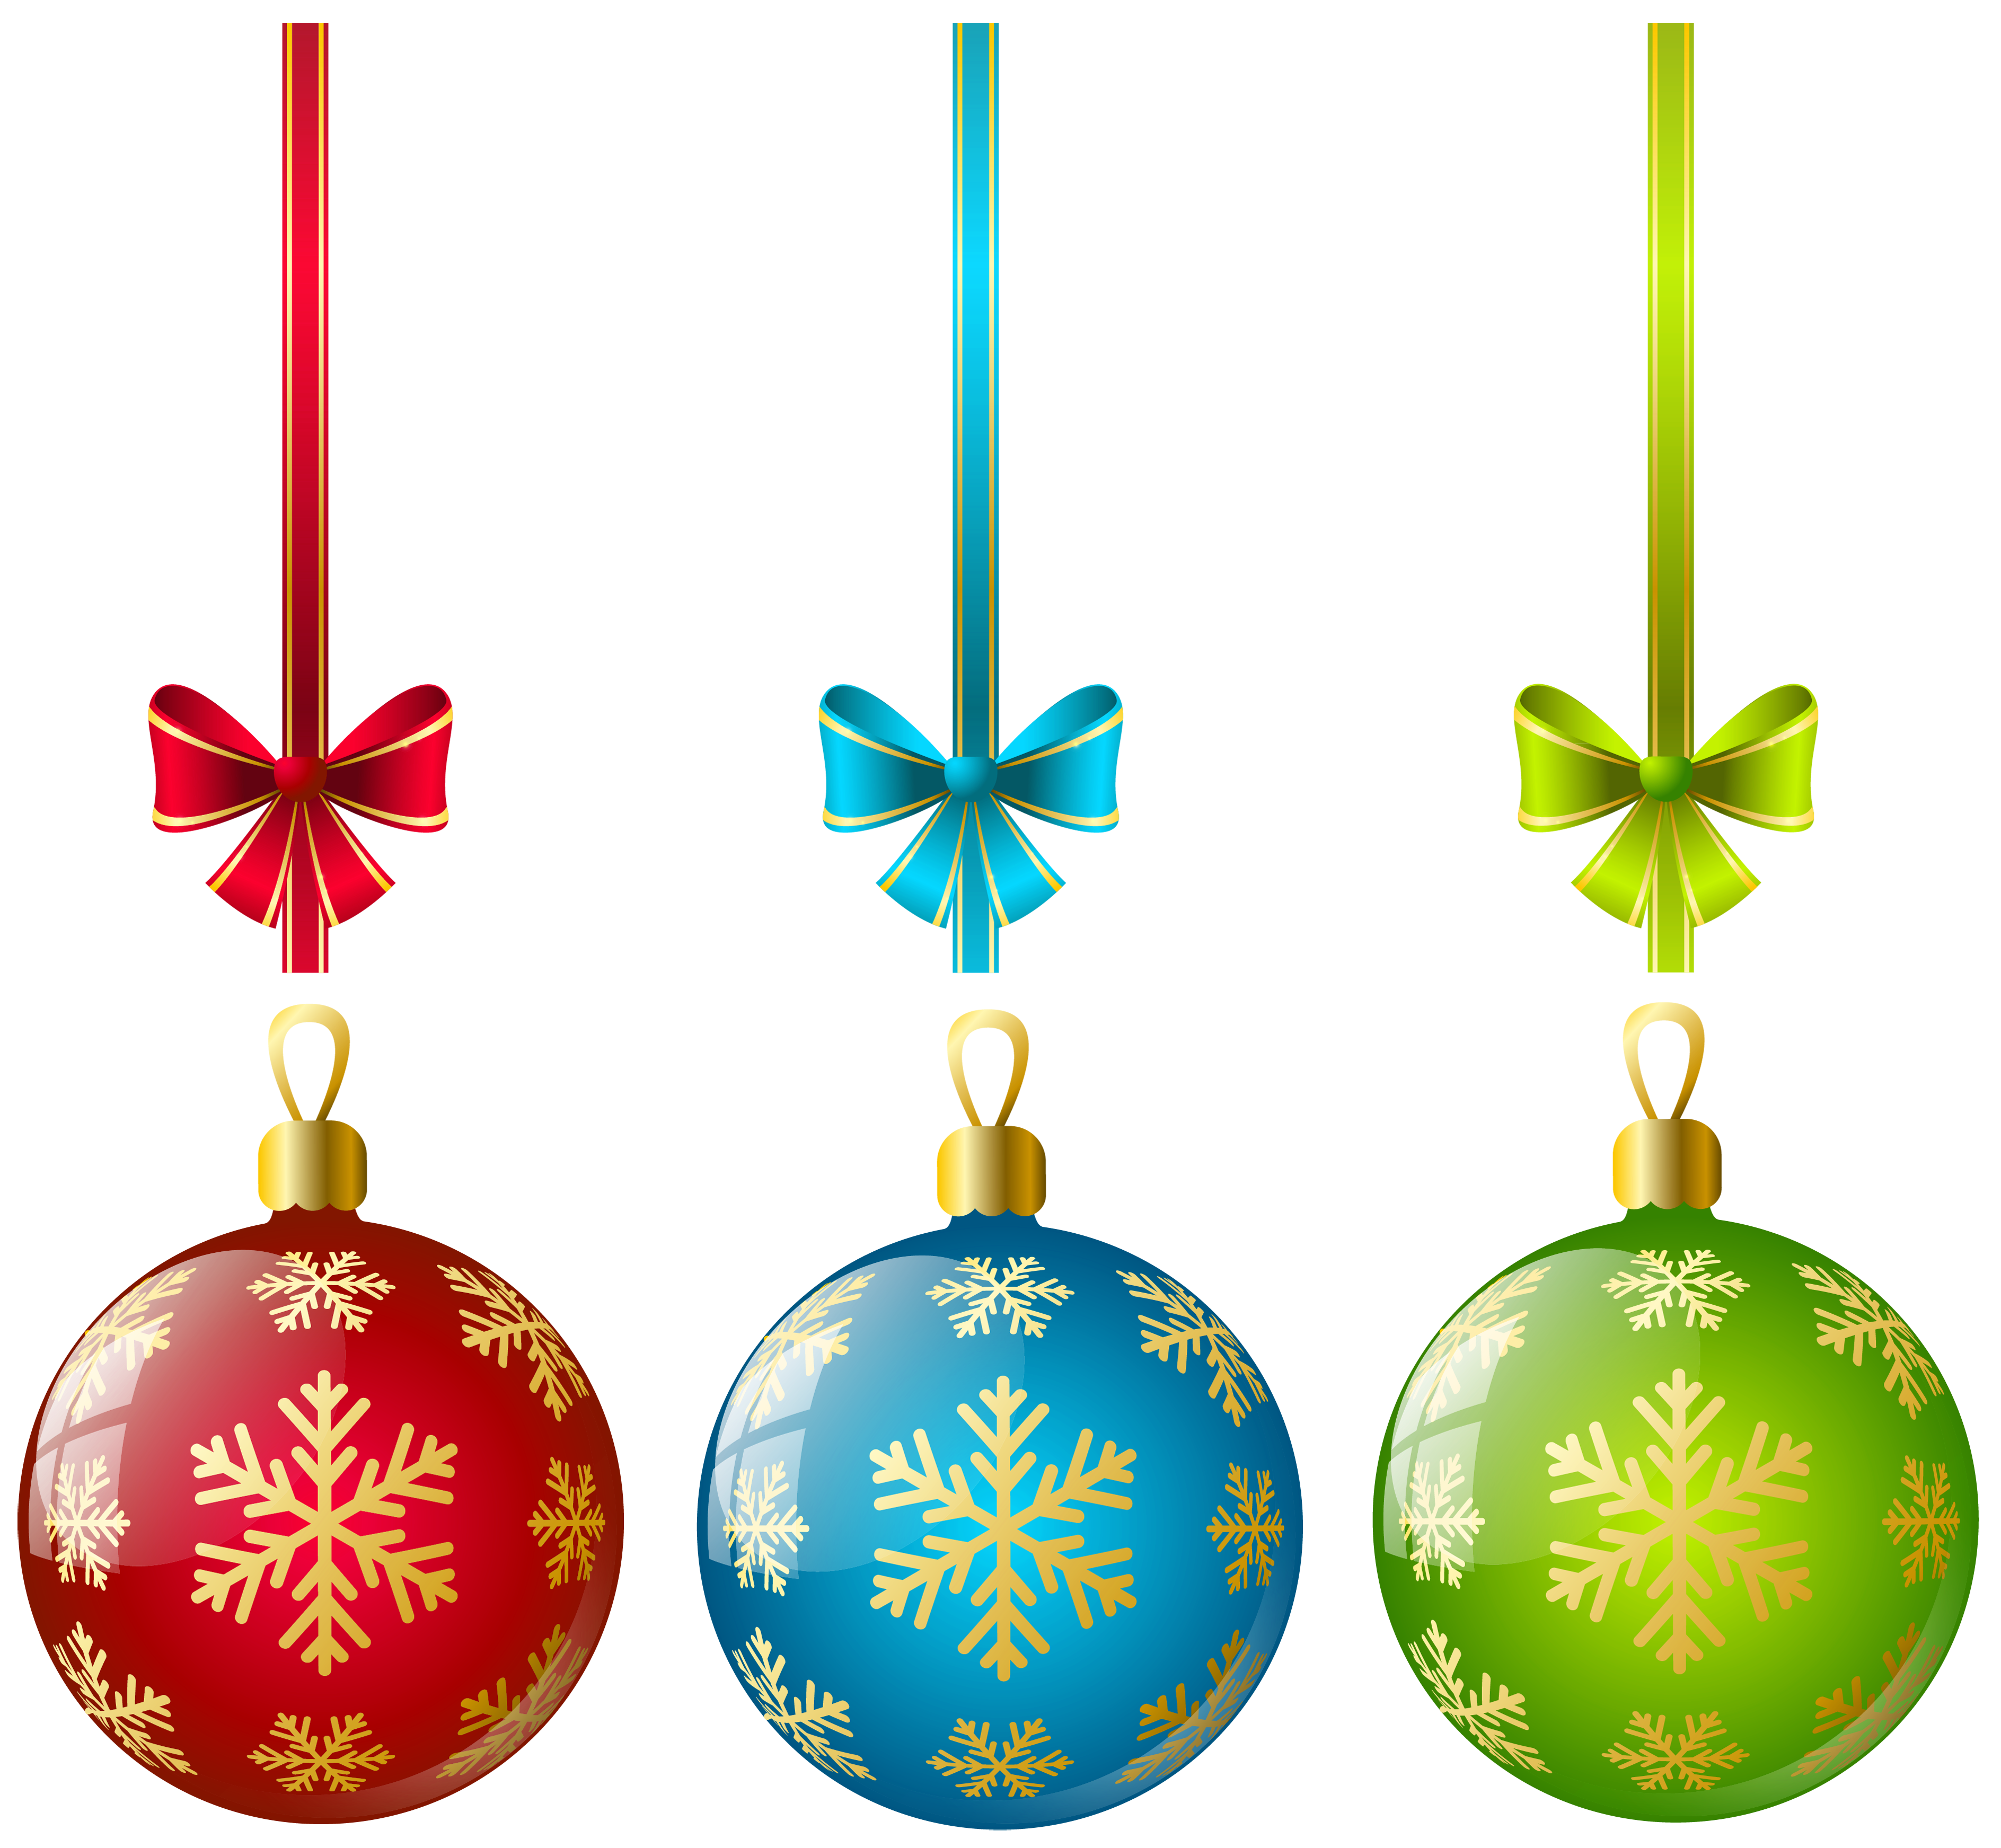 Christmas decorations clipart #6